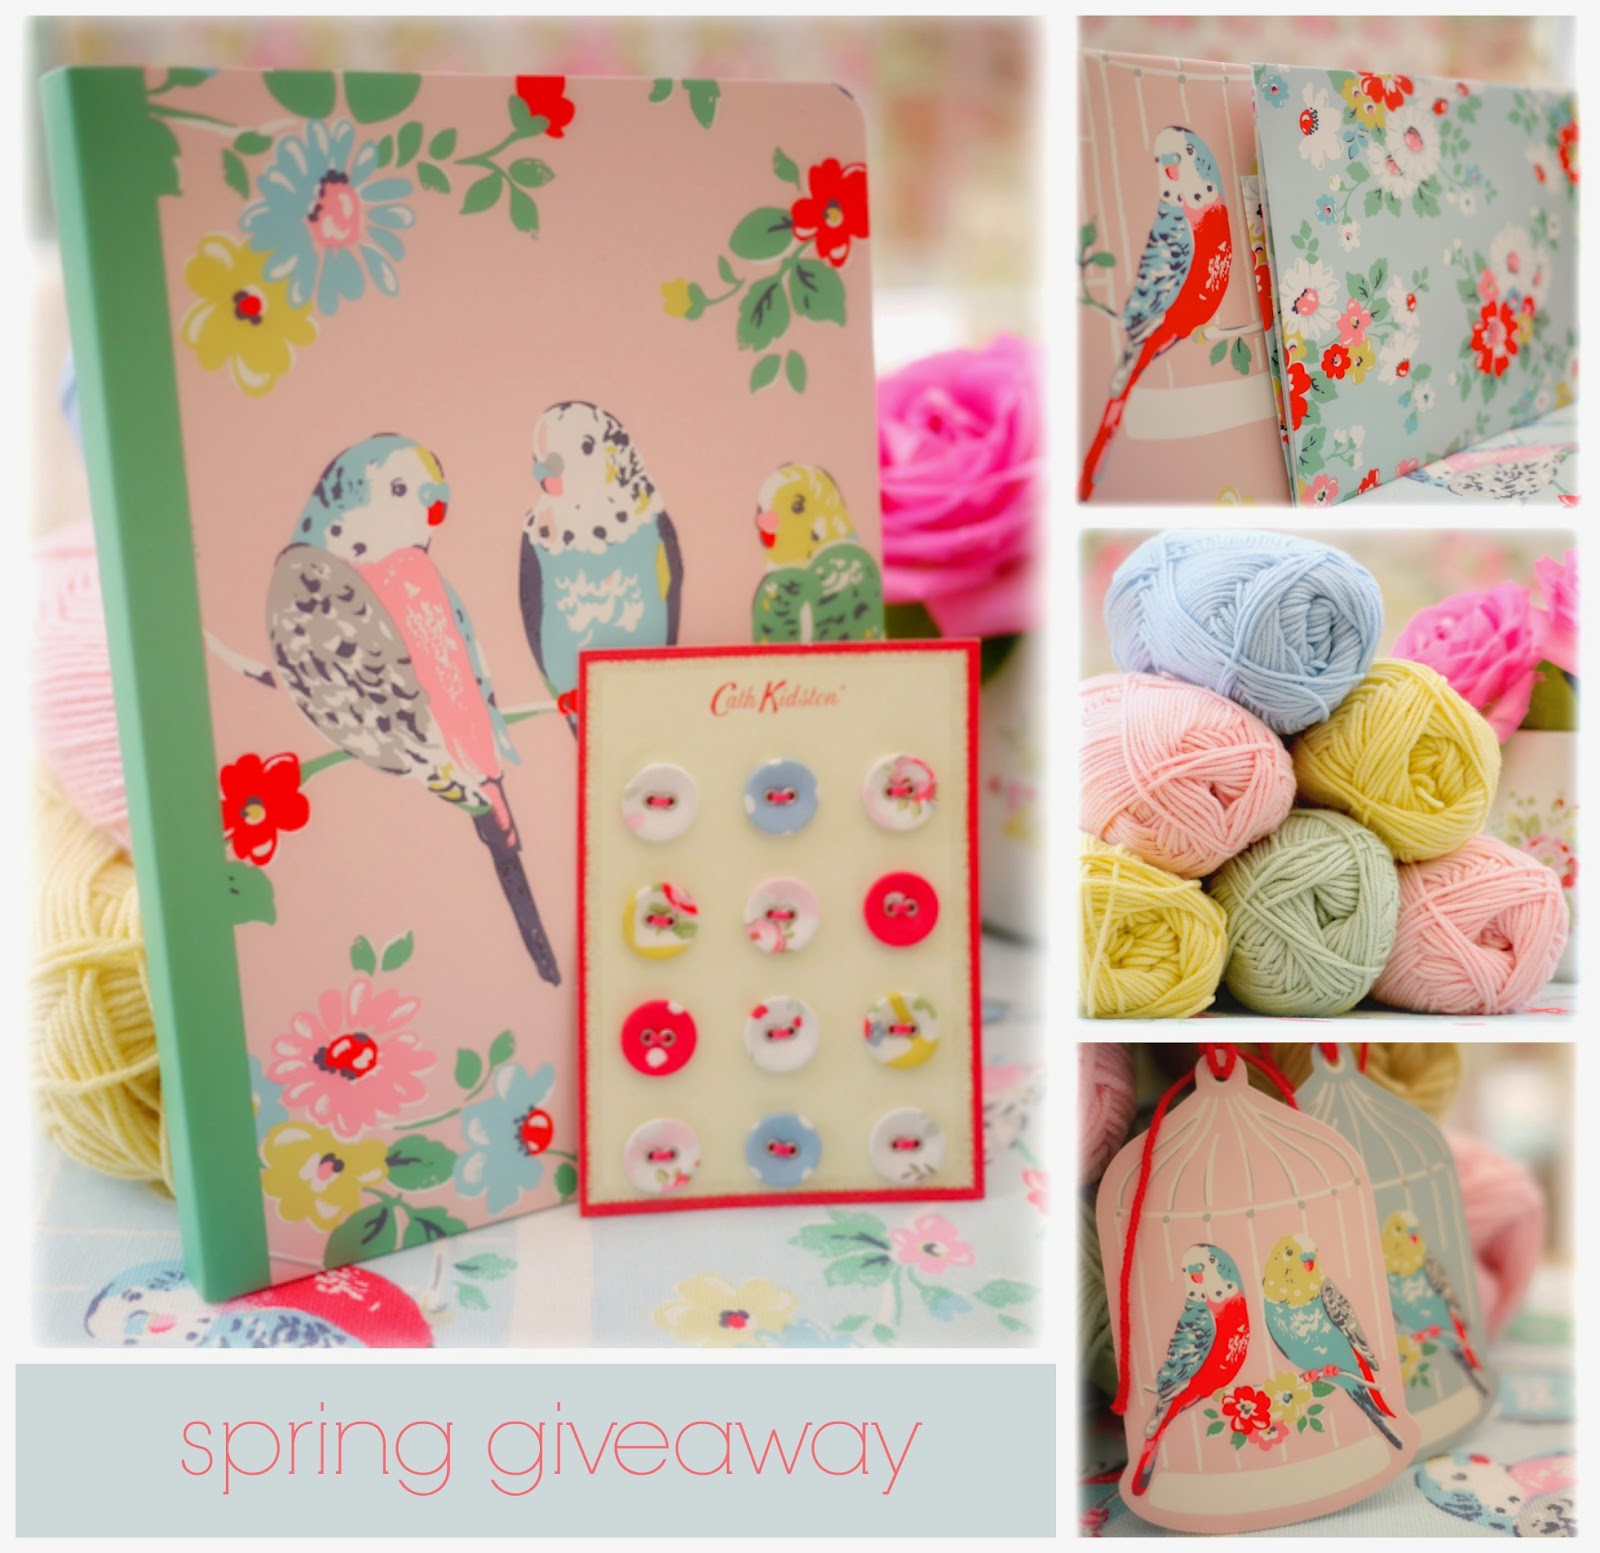 Susan has a lovely giveaway